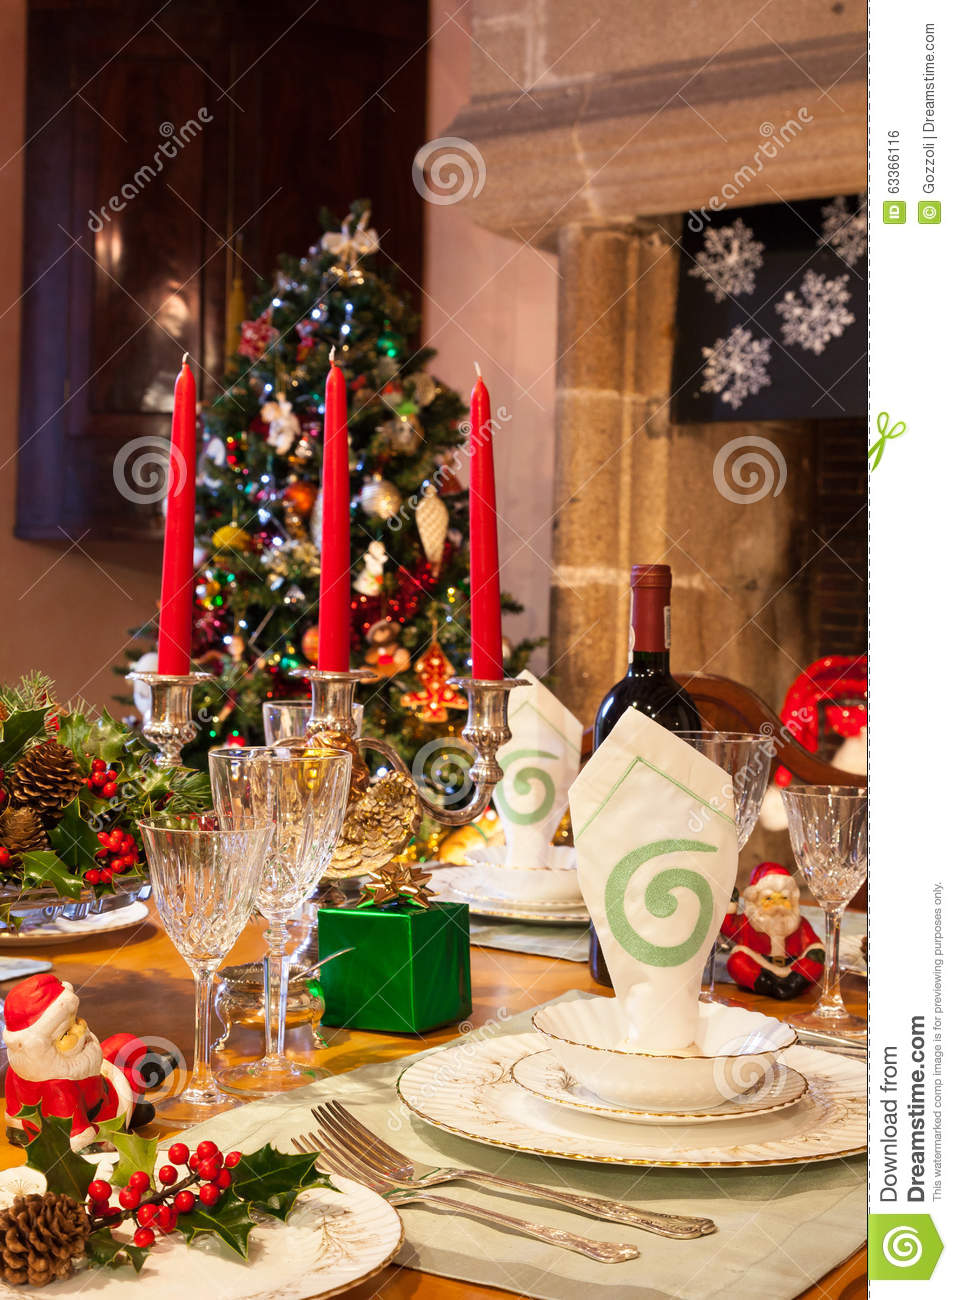 Festive Christmas Dinner Table Setting In Warm Light Stock